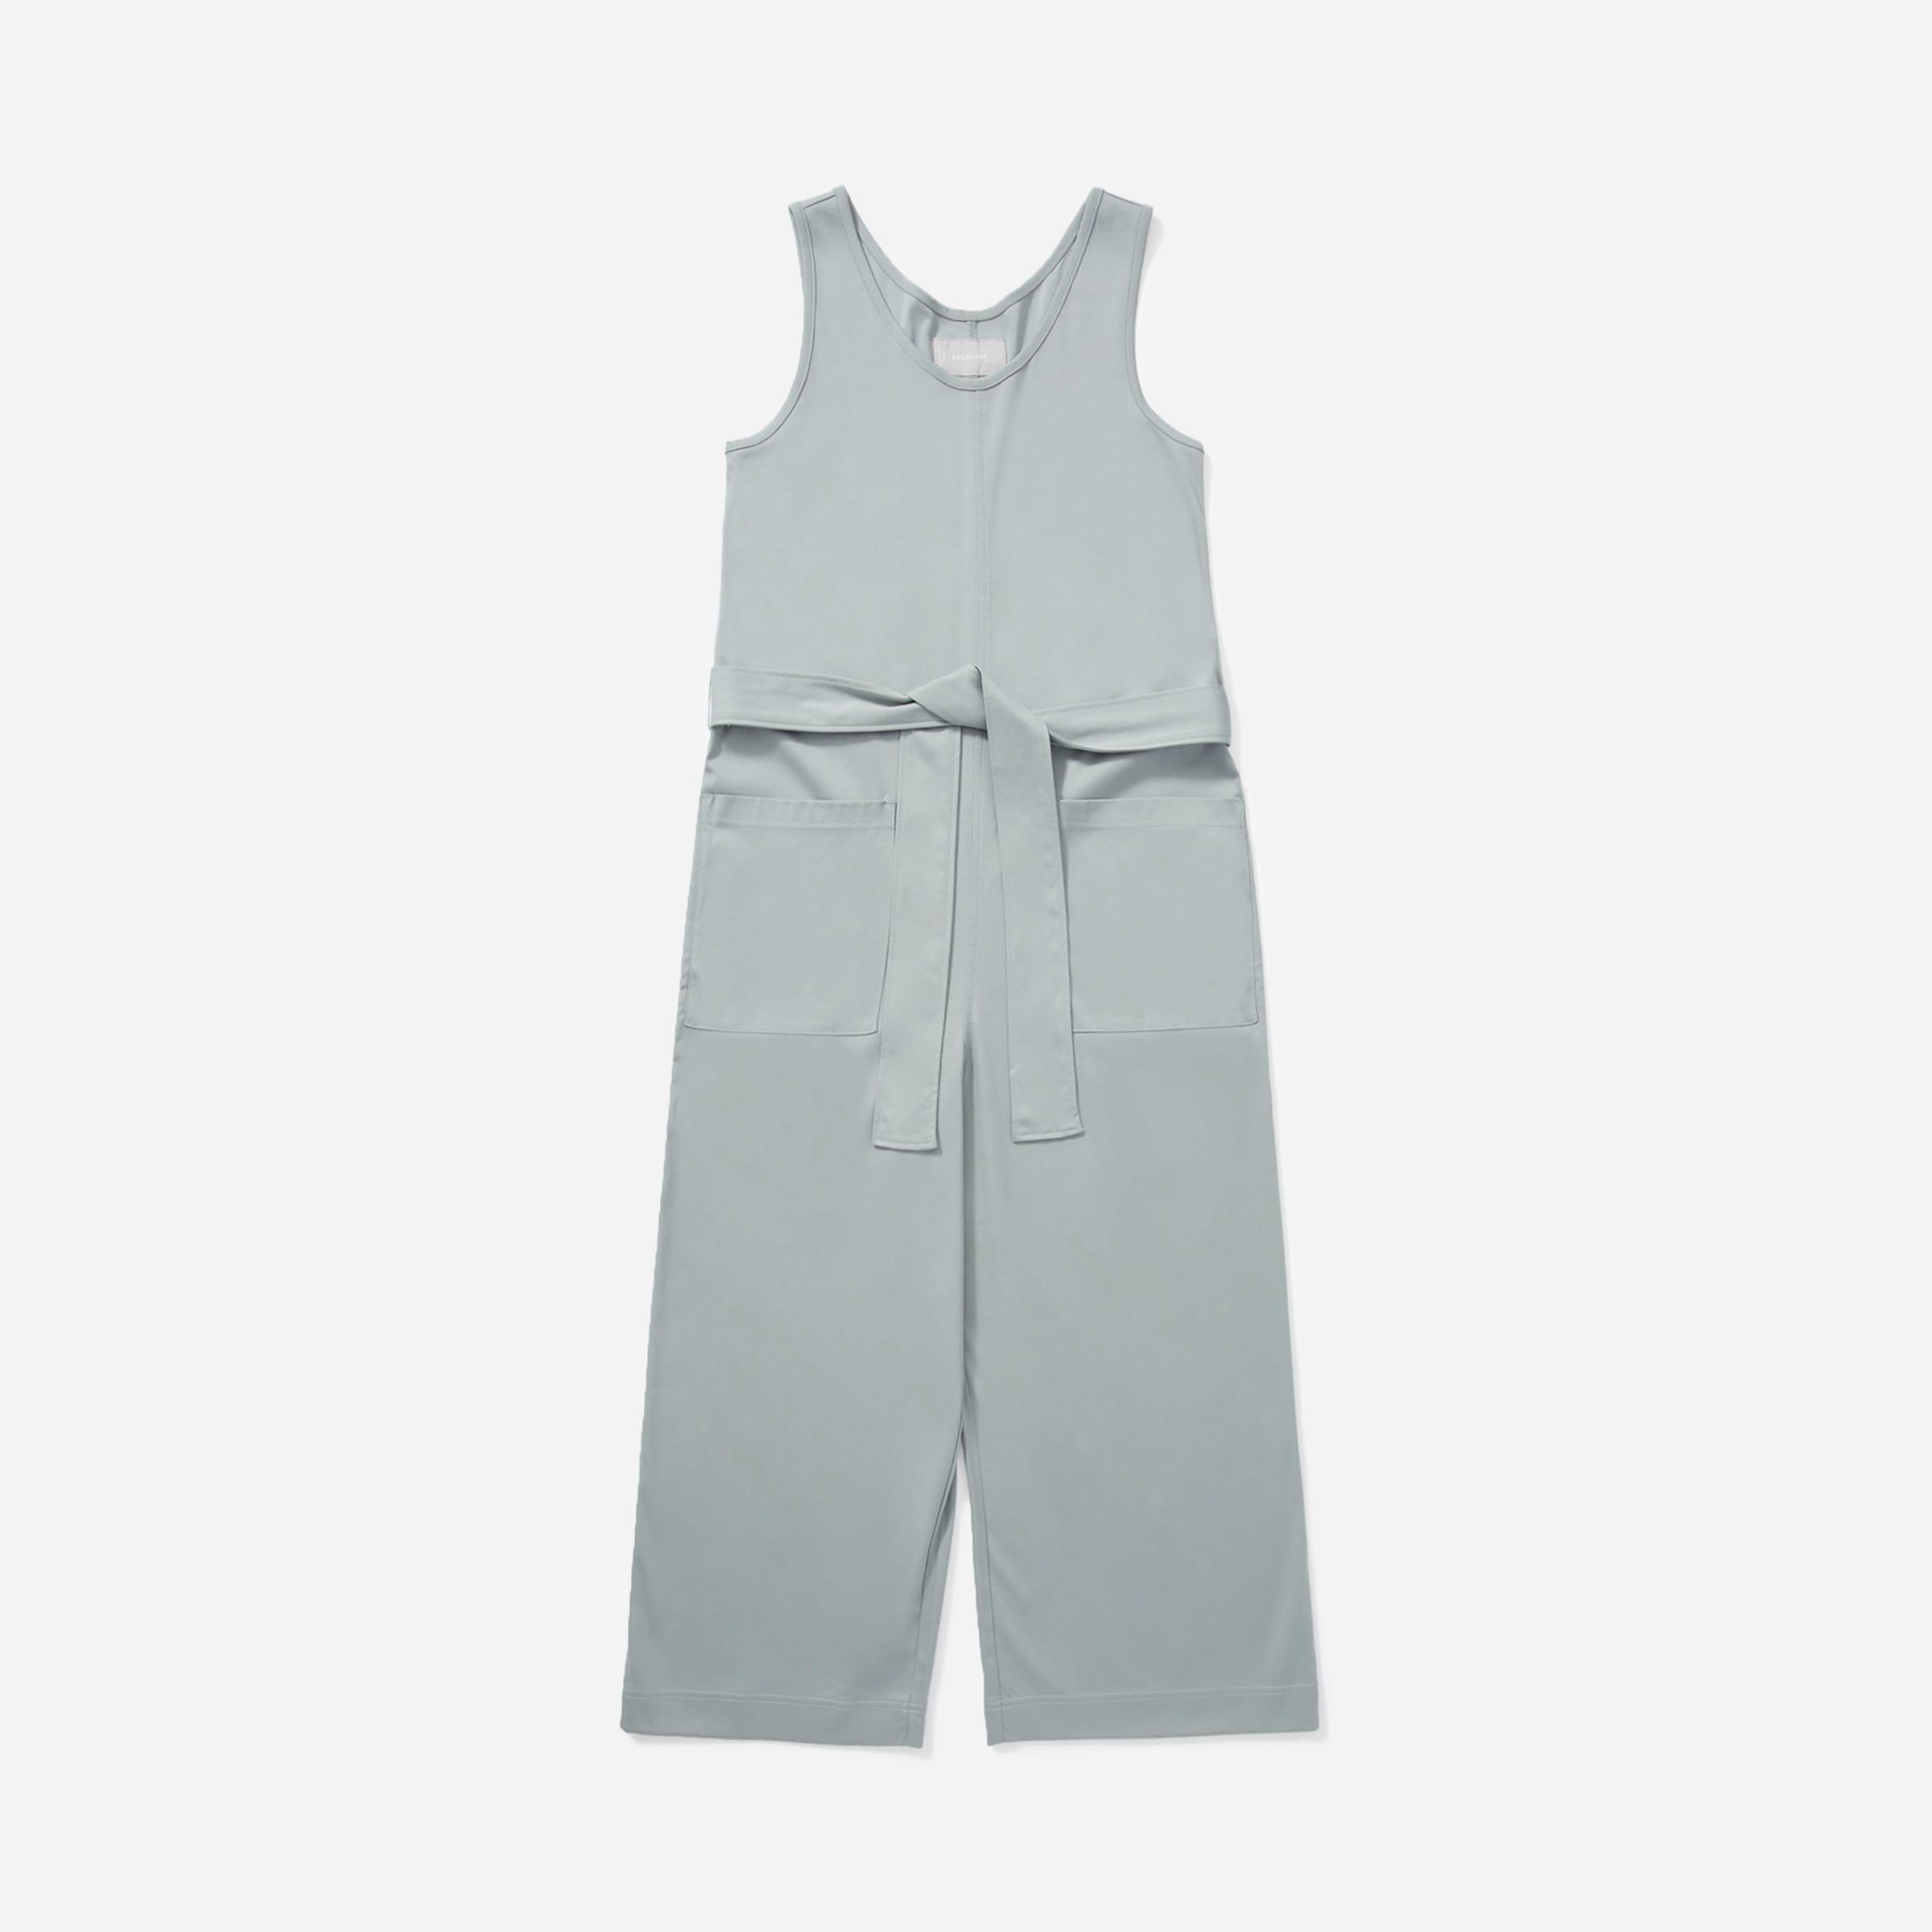 The Luxe Cotton Jumpsuit 5